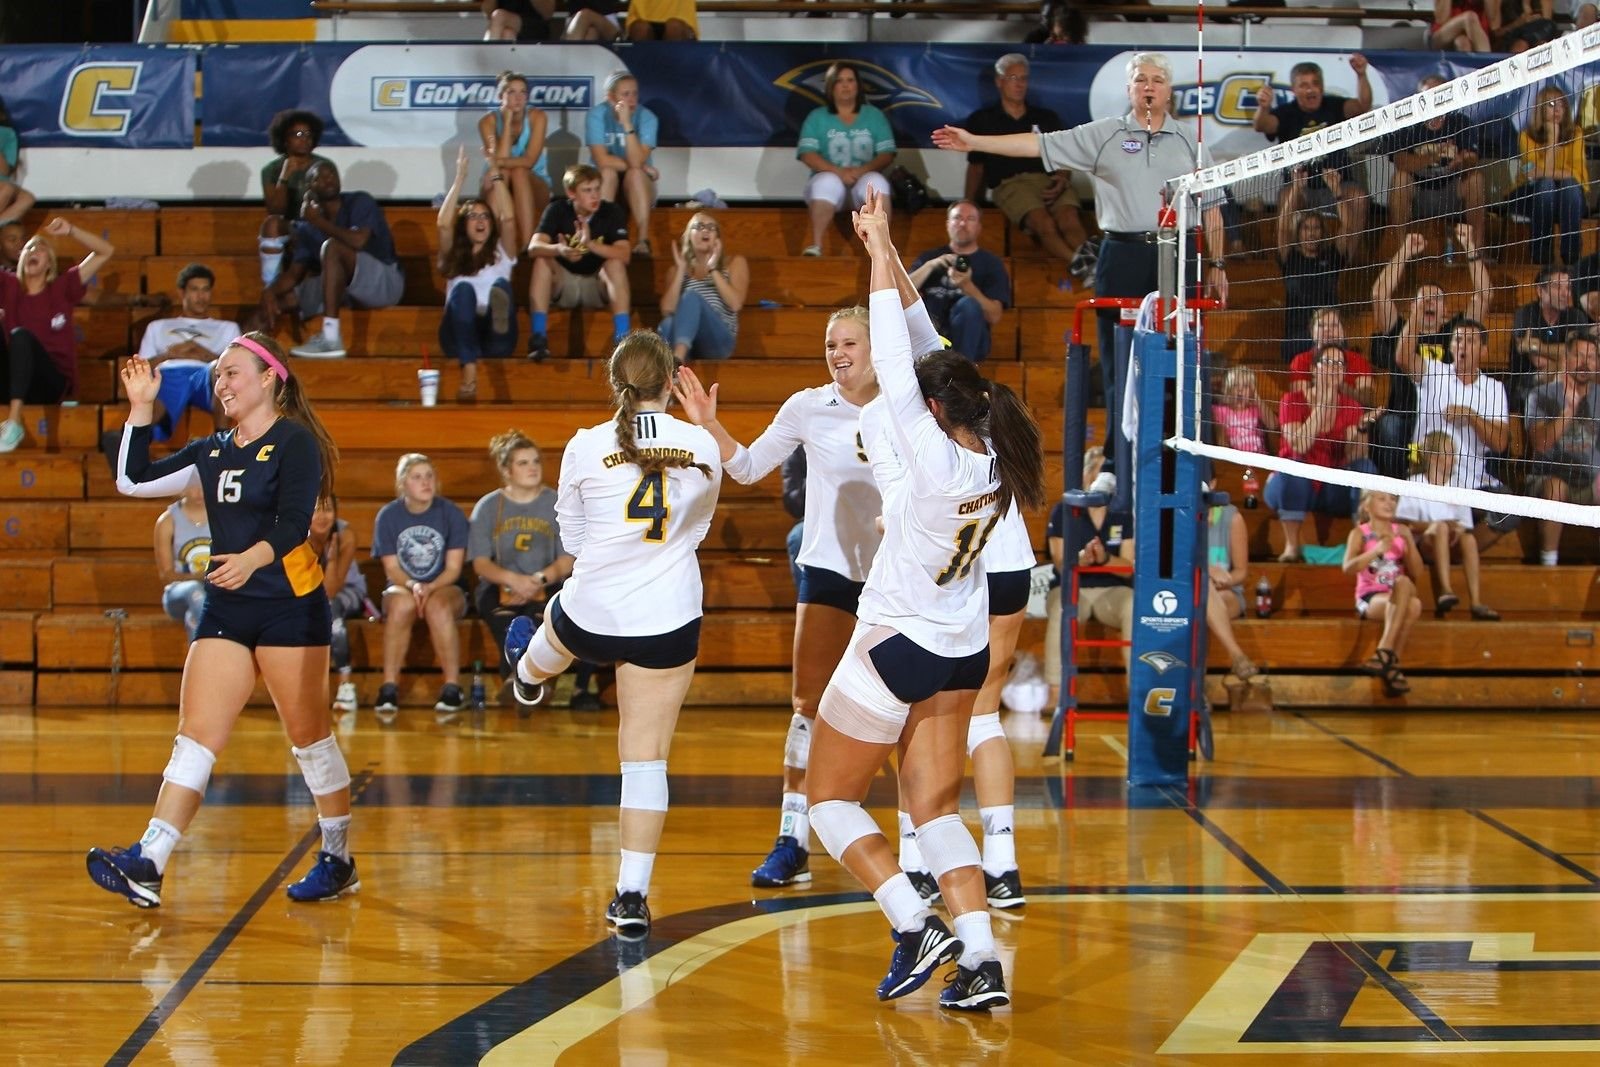 The University Of Tennessee At Chattanooga Volleyball Team Was Awarded The Avca Team Award For Academic Exce Volleyball News Volleyball University Of Tennessee